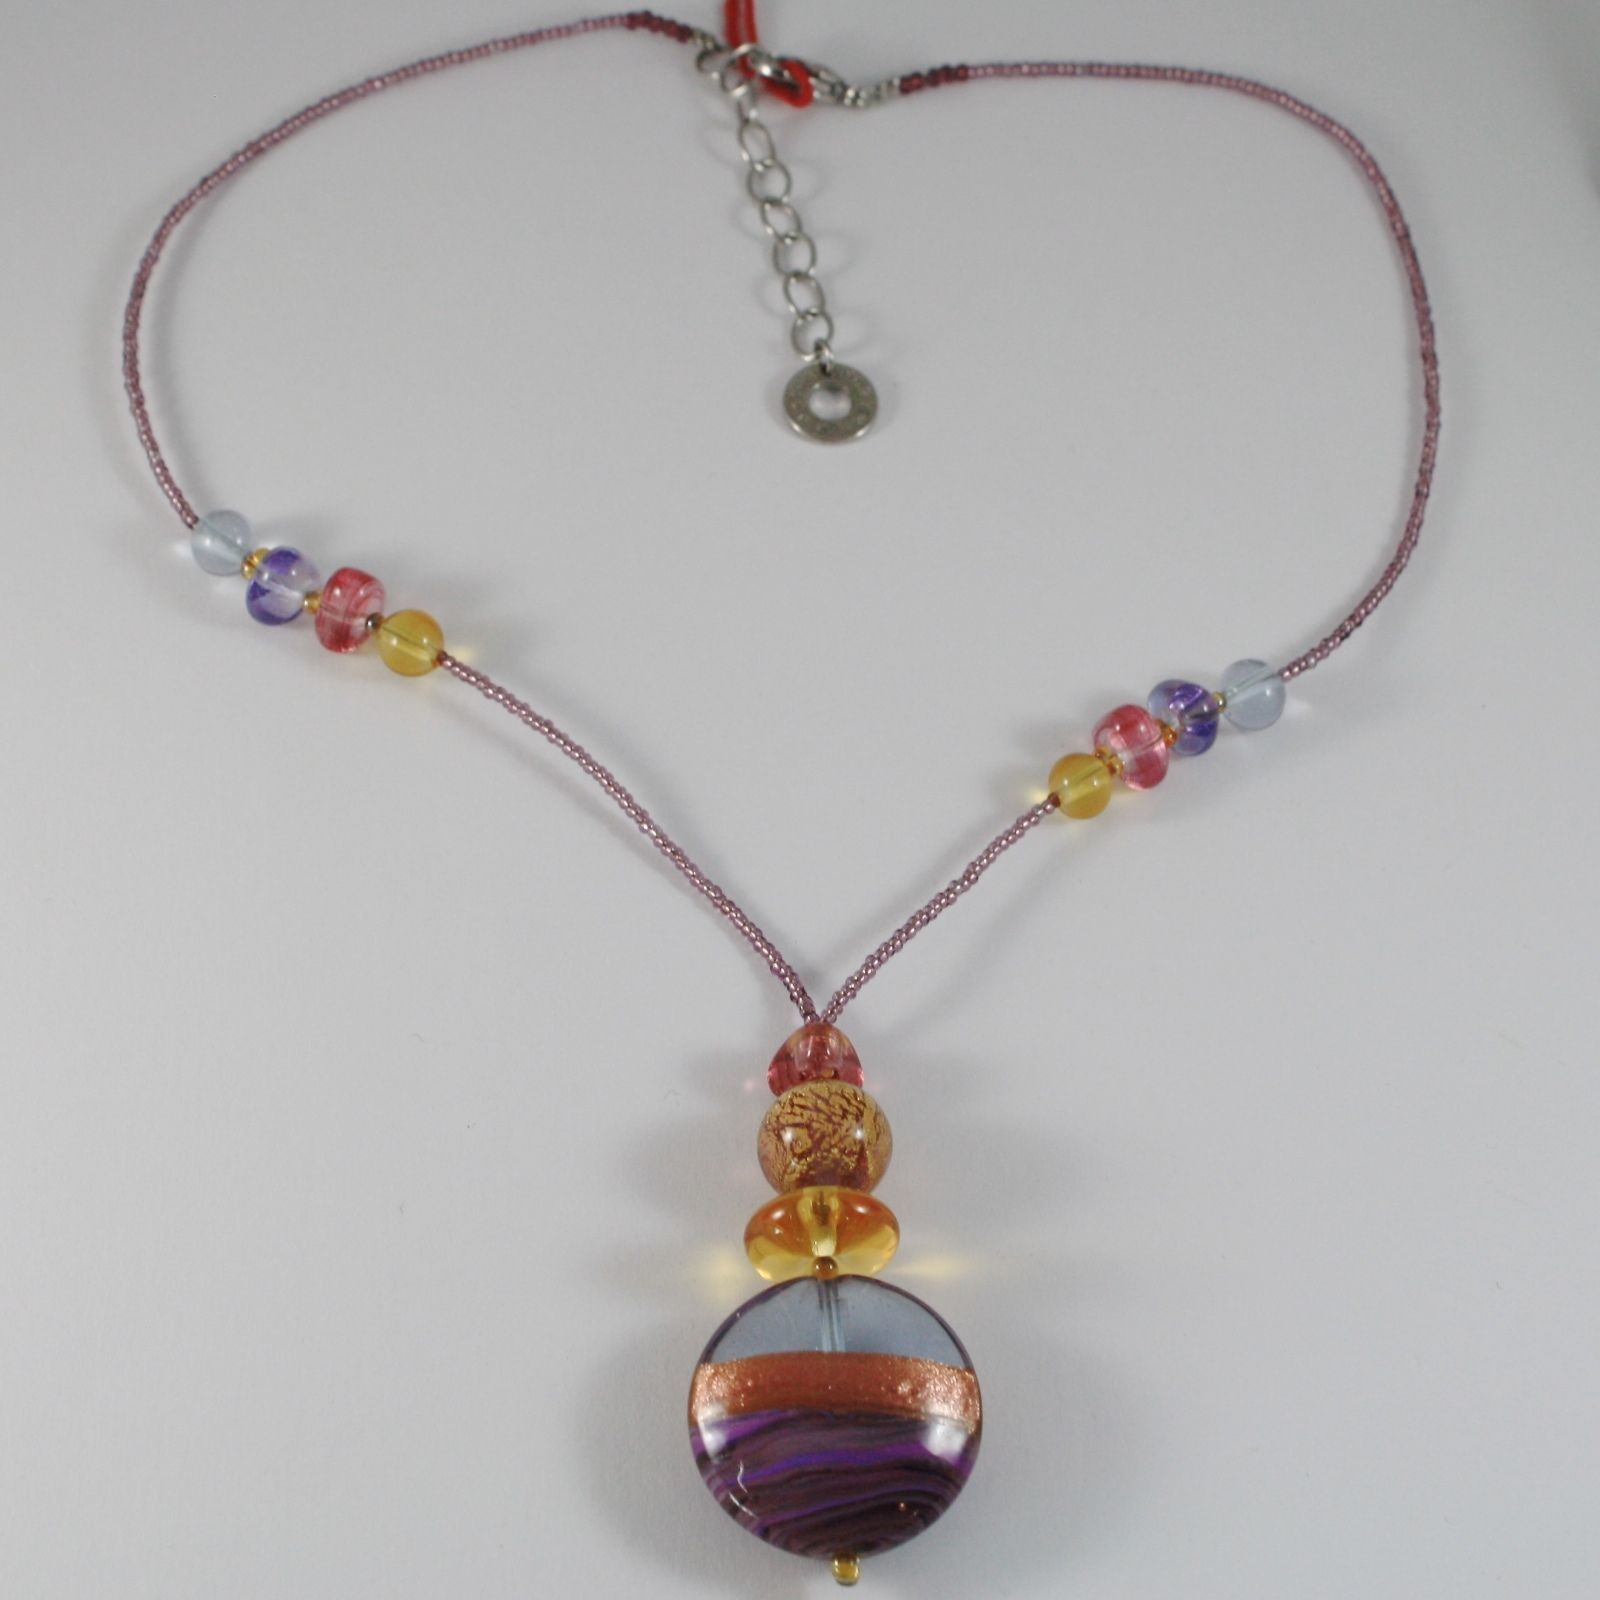 ANTICA MURRINA VENEZIA NECKLACE, BIG PURPLE FINELY STRIPED DISC PENDANT